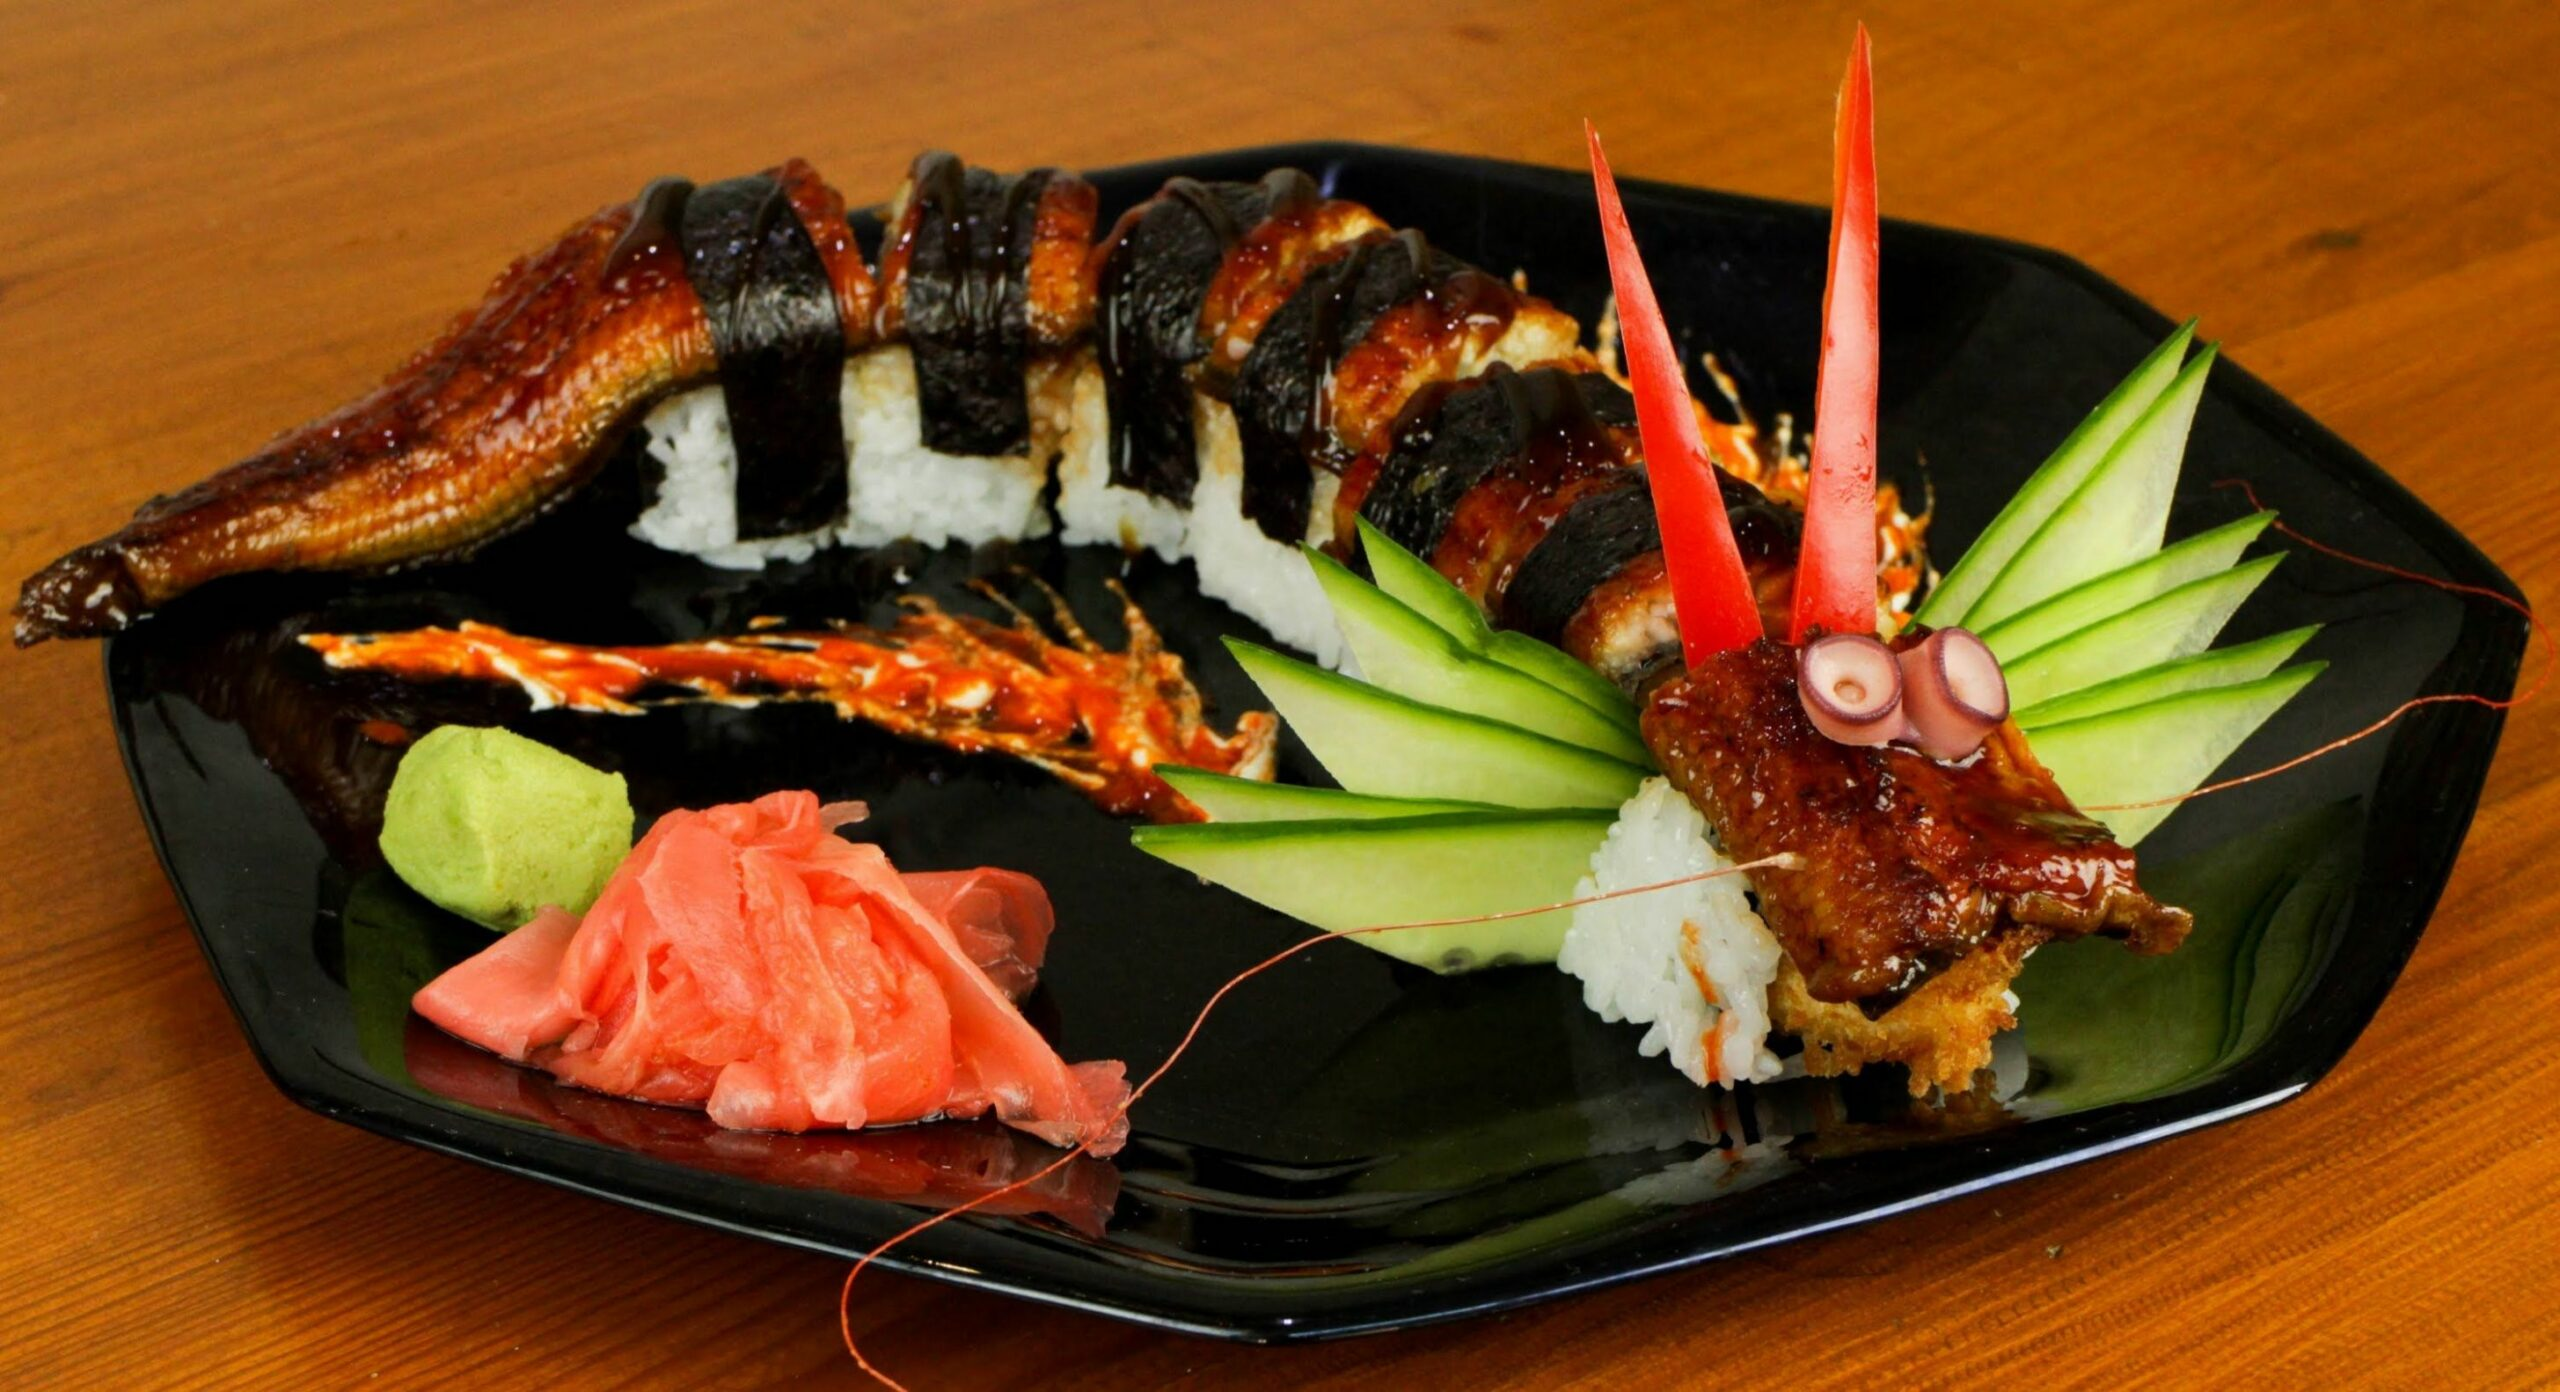 Japanese food recipies | Dragon Sushi Roll Recipe - Japanese Food ...